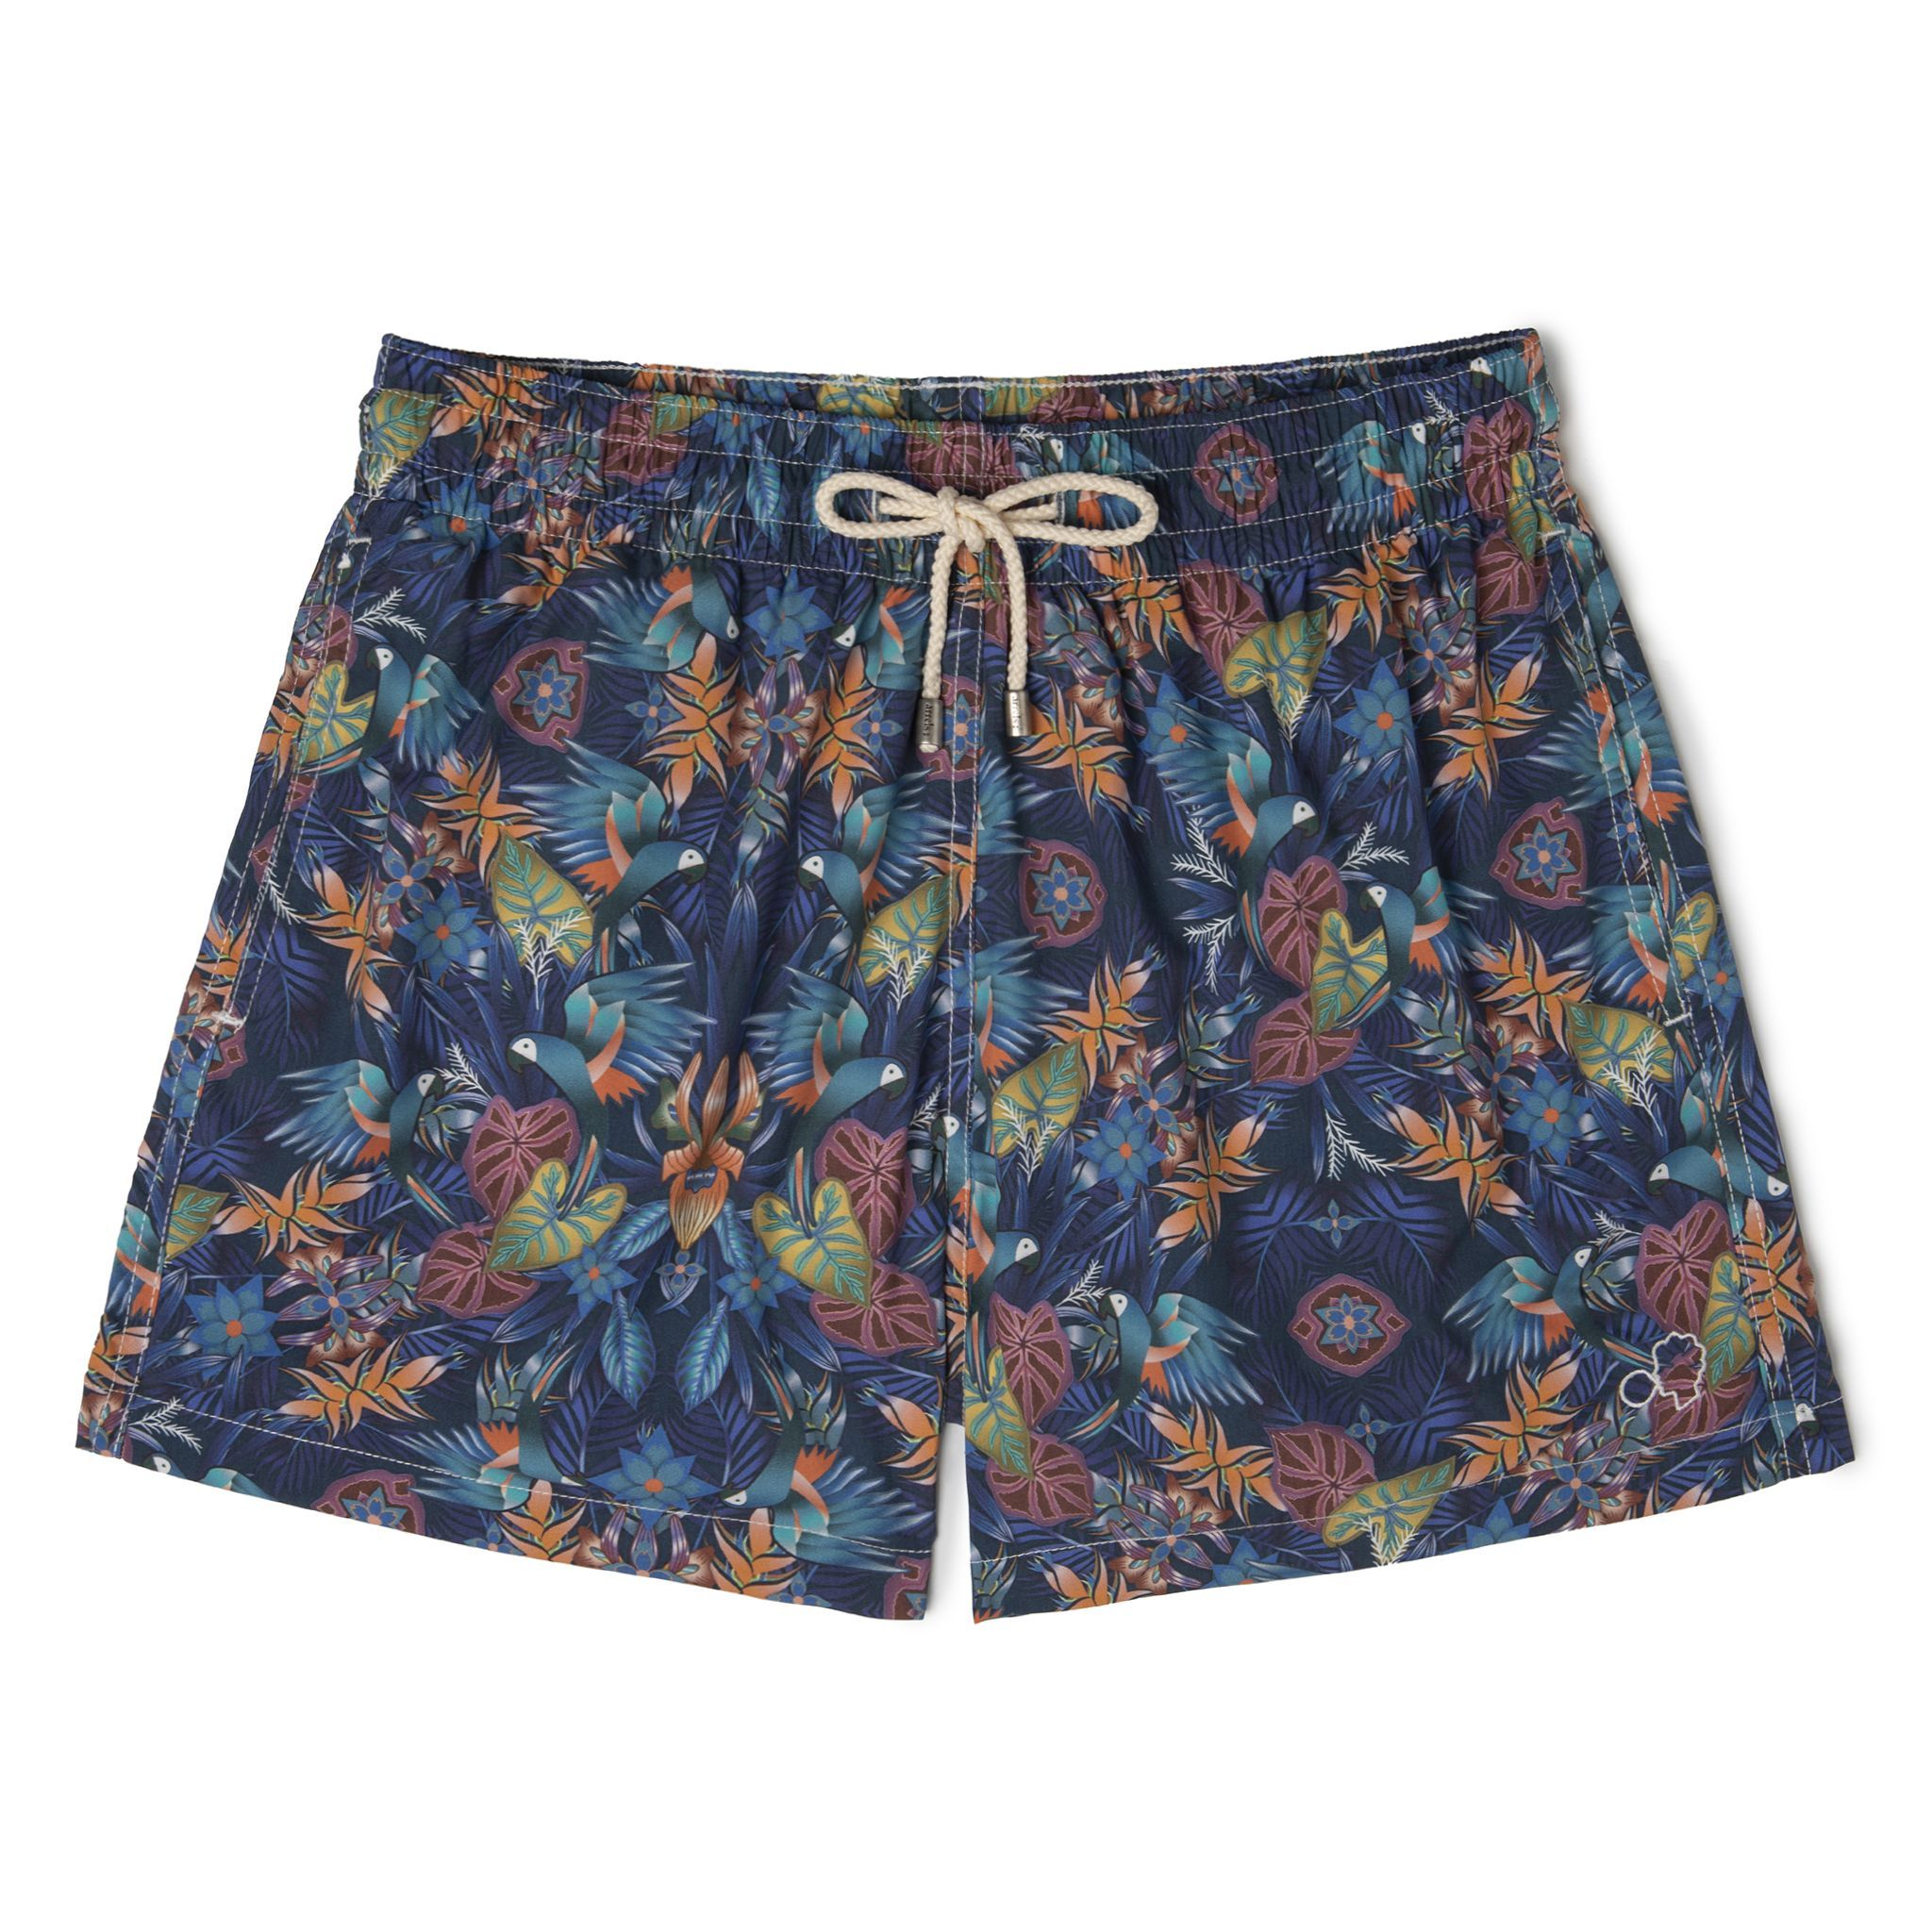 Short-Length Swim Shorts Blue Guacamayo